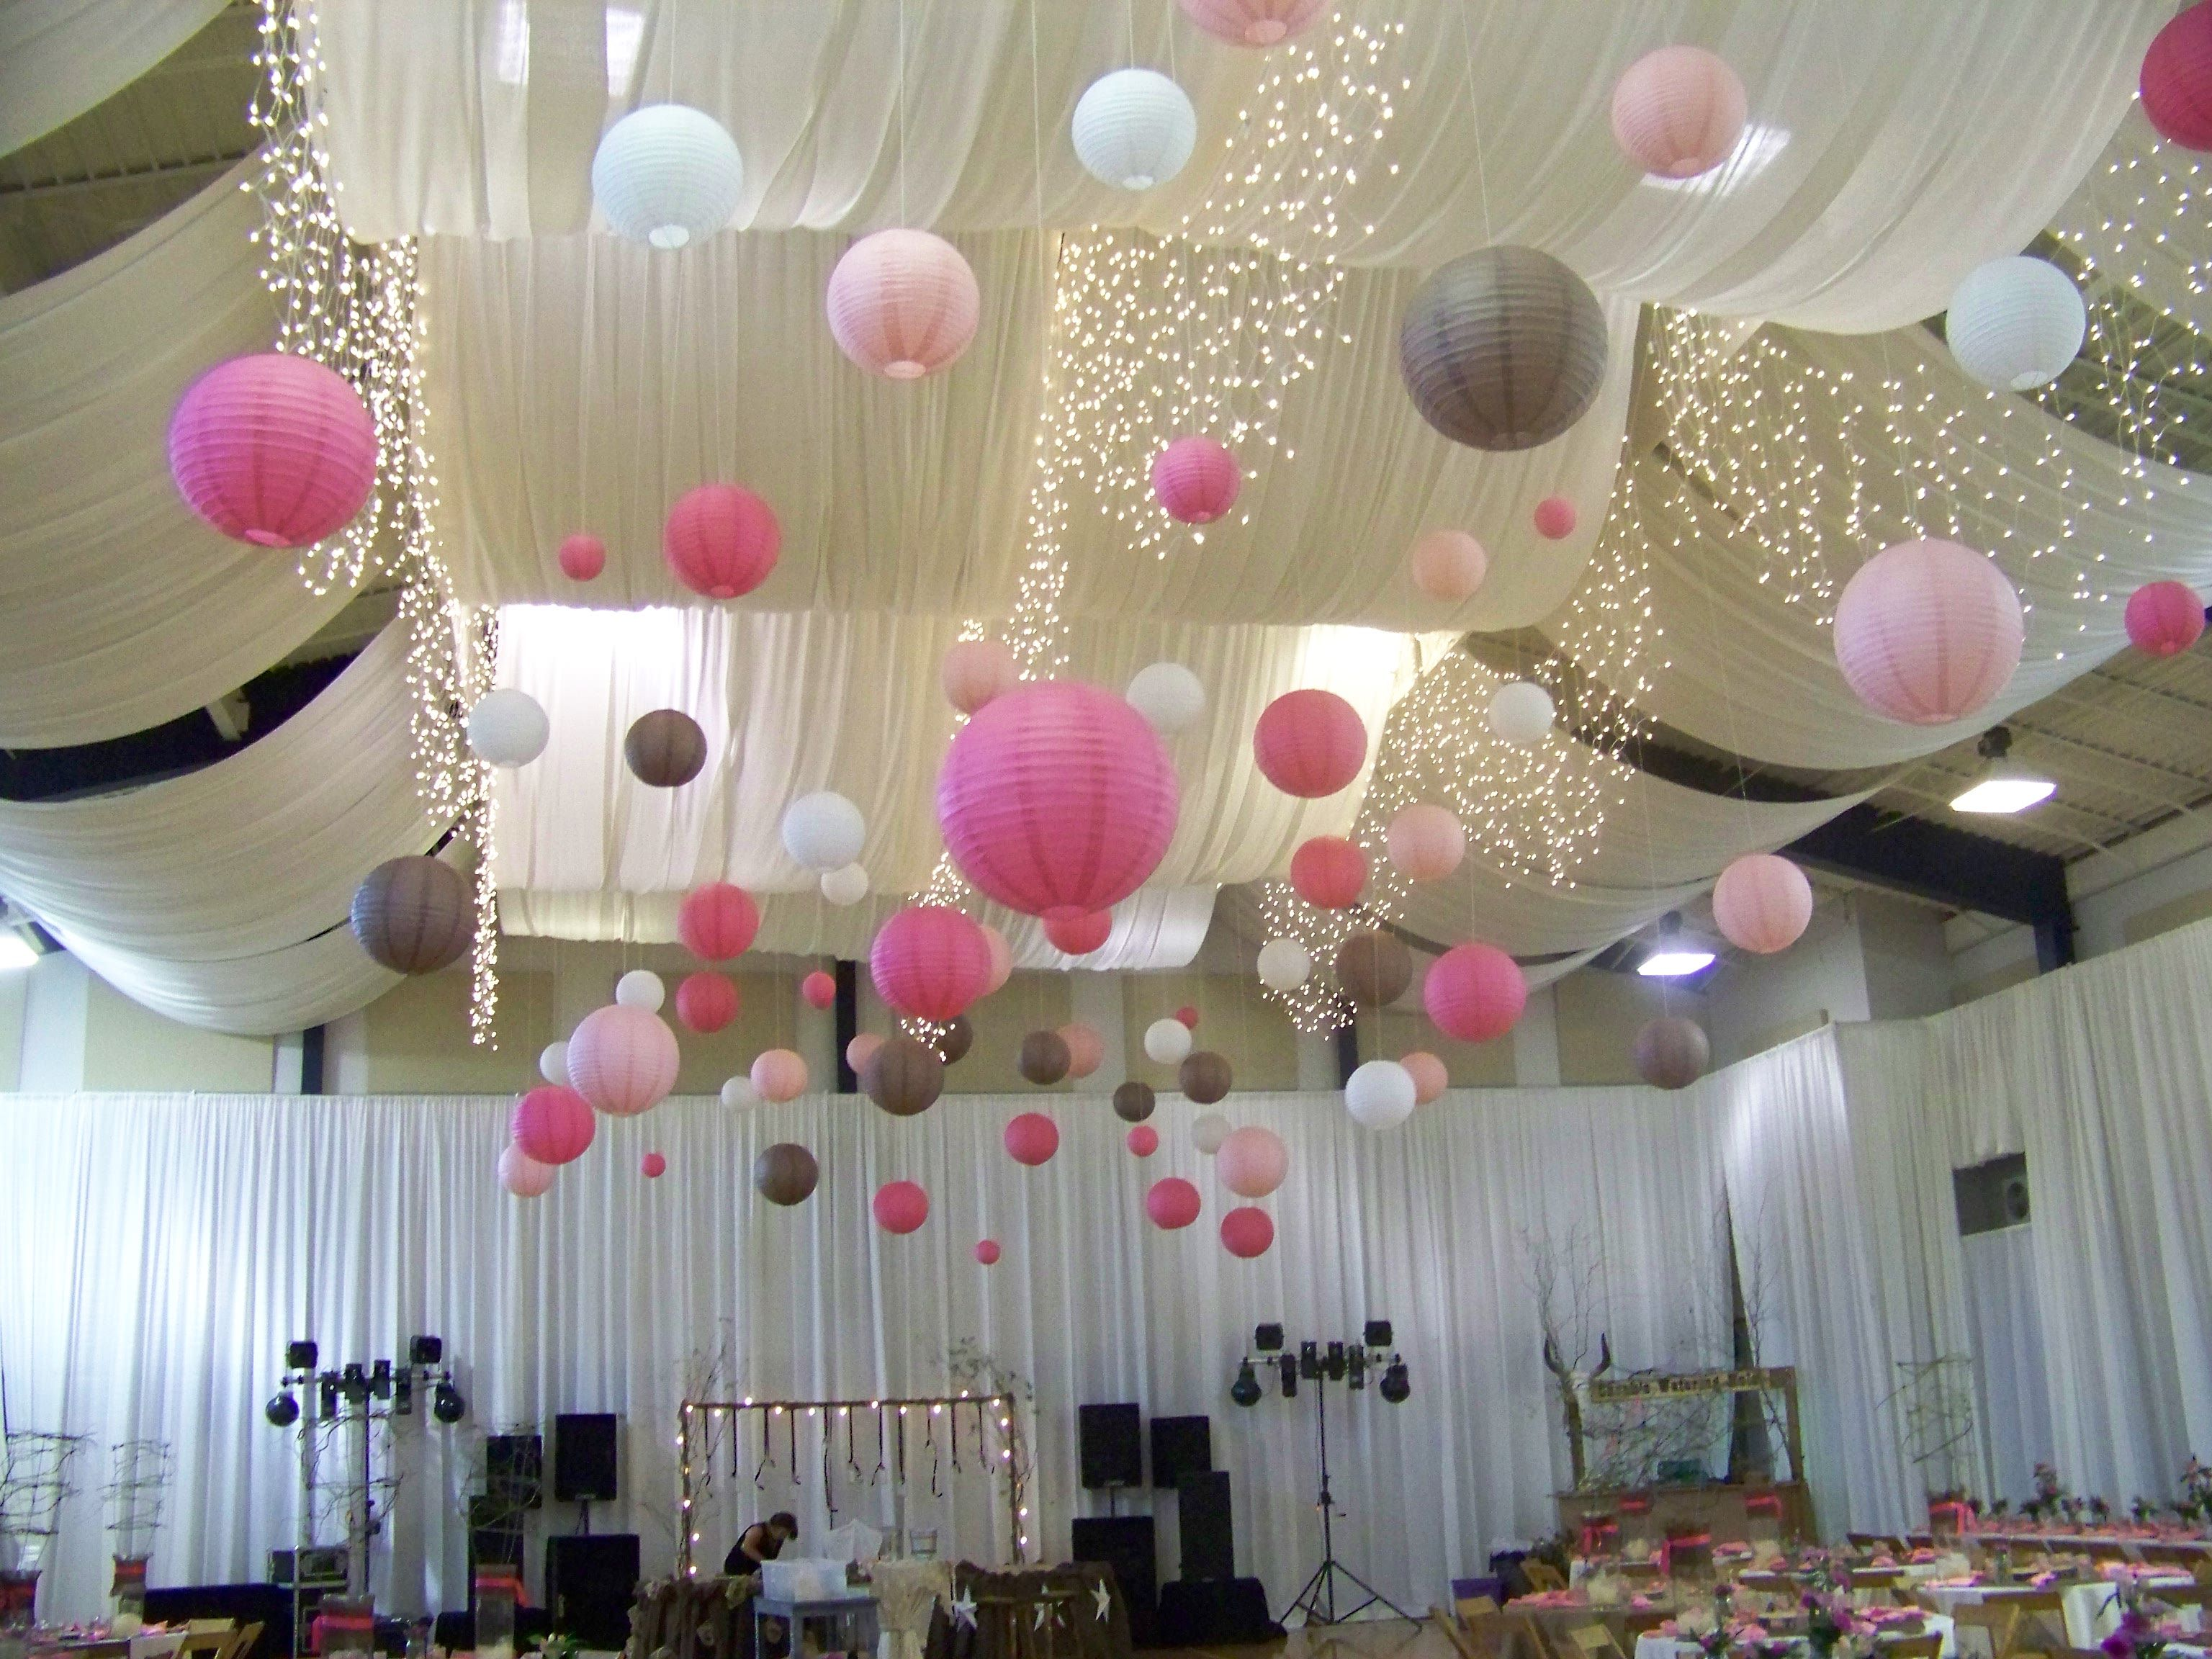 White paper lanterns with lights - 1000 Ideas About Paper Lanterns With Lights On Pinterest Paper Lanterns Diy Wedding Decorations And Vintage Party Decorations